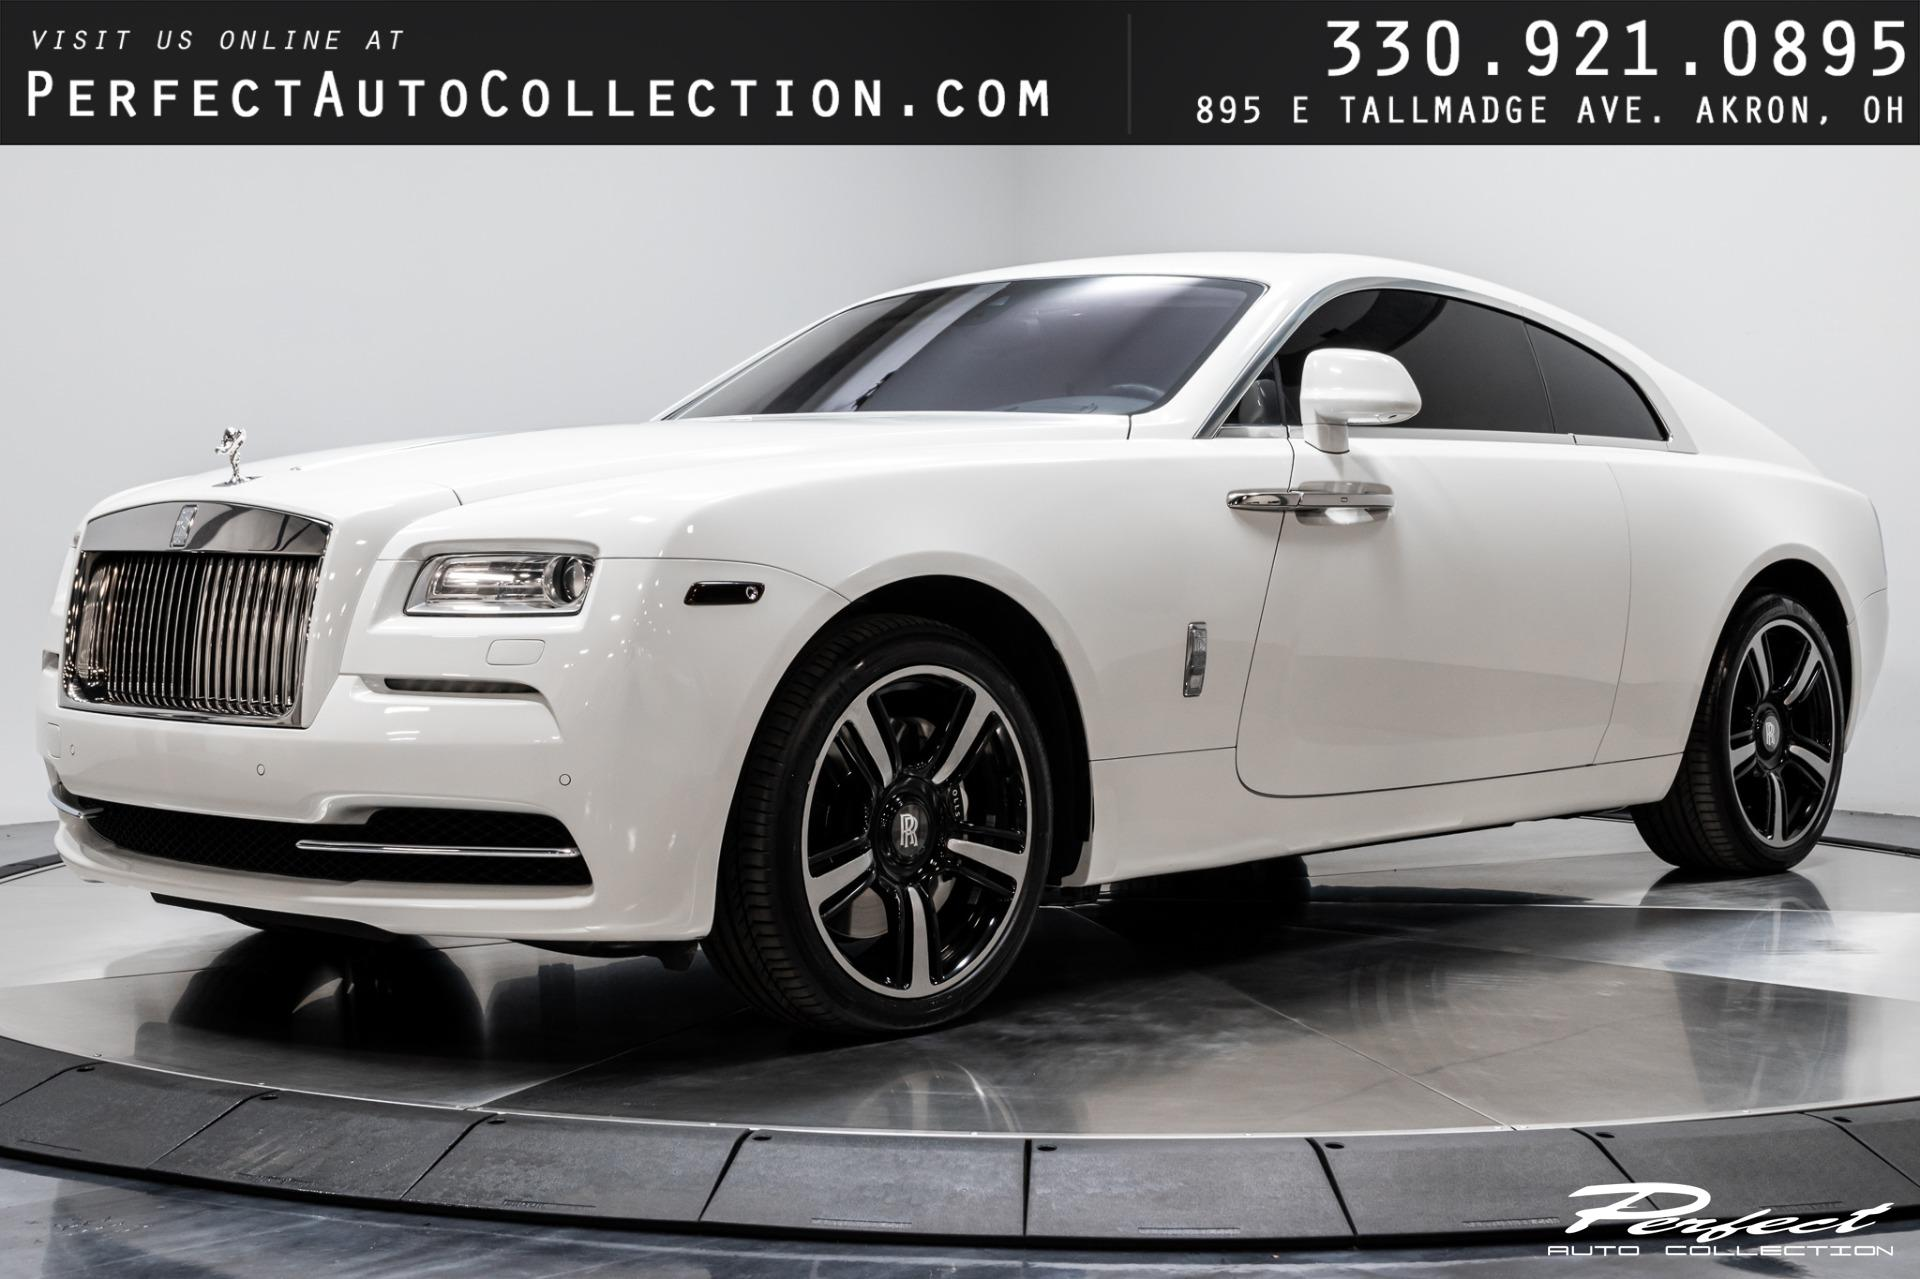 Used 2014 Rolls-Royce Wraith for sale $149,993 at Perfect Auto Collection in Akron OH 44310 1